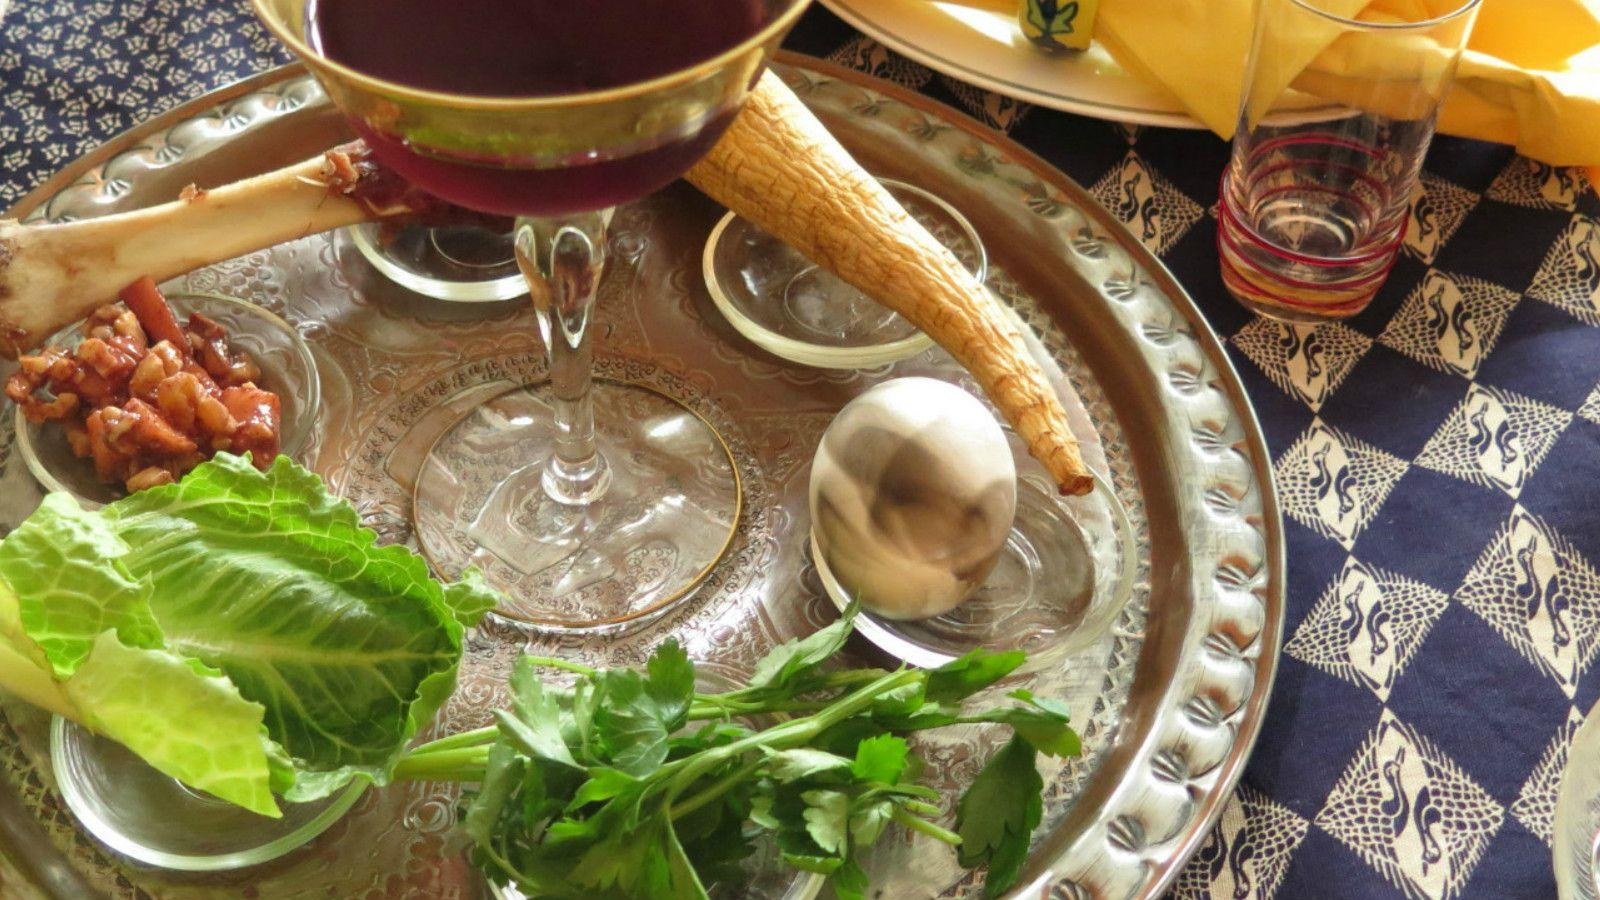 9 Things You Didn't Know About Passover